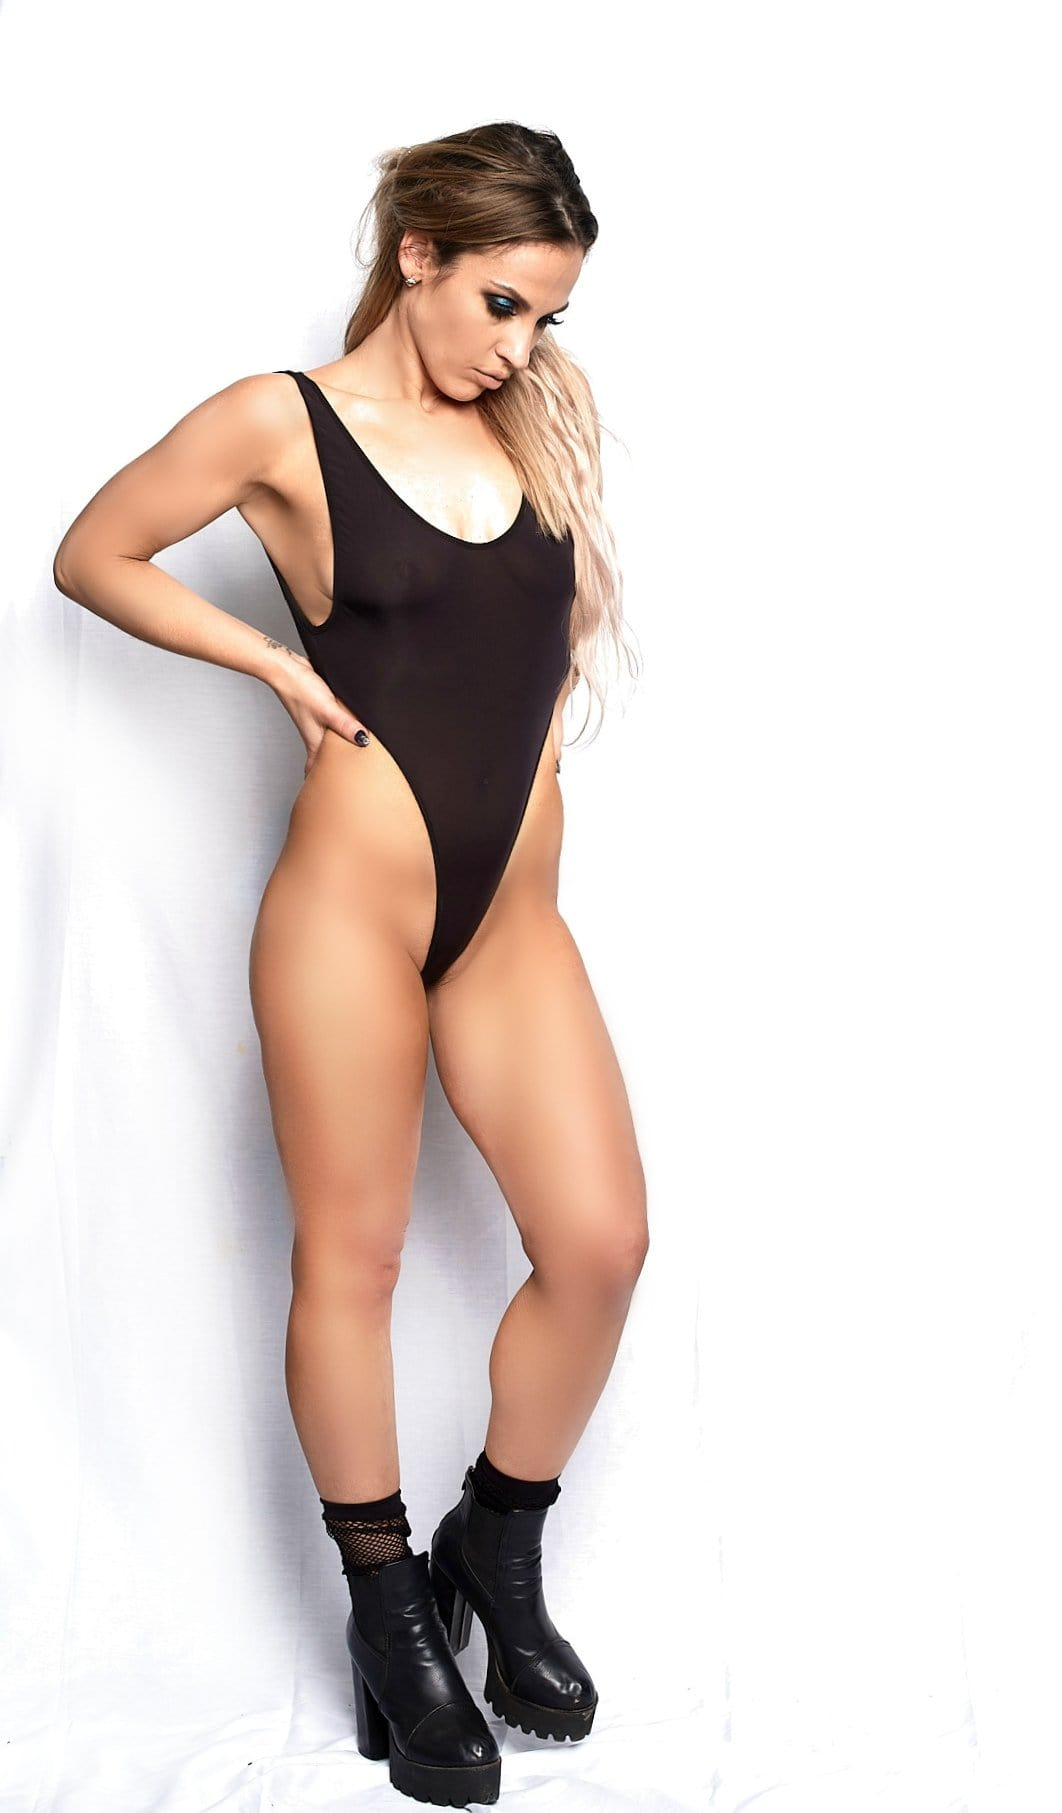 Thong Bodysuit w/ Sexy High-cut Legs - Cali Diamond